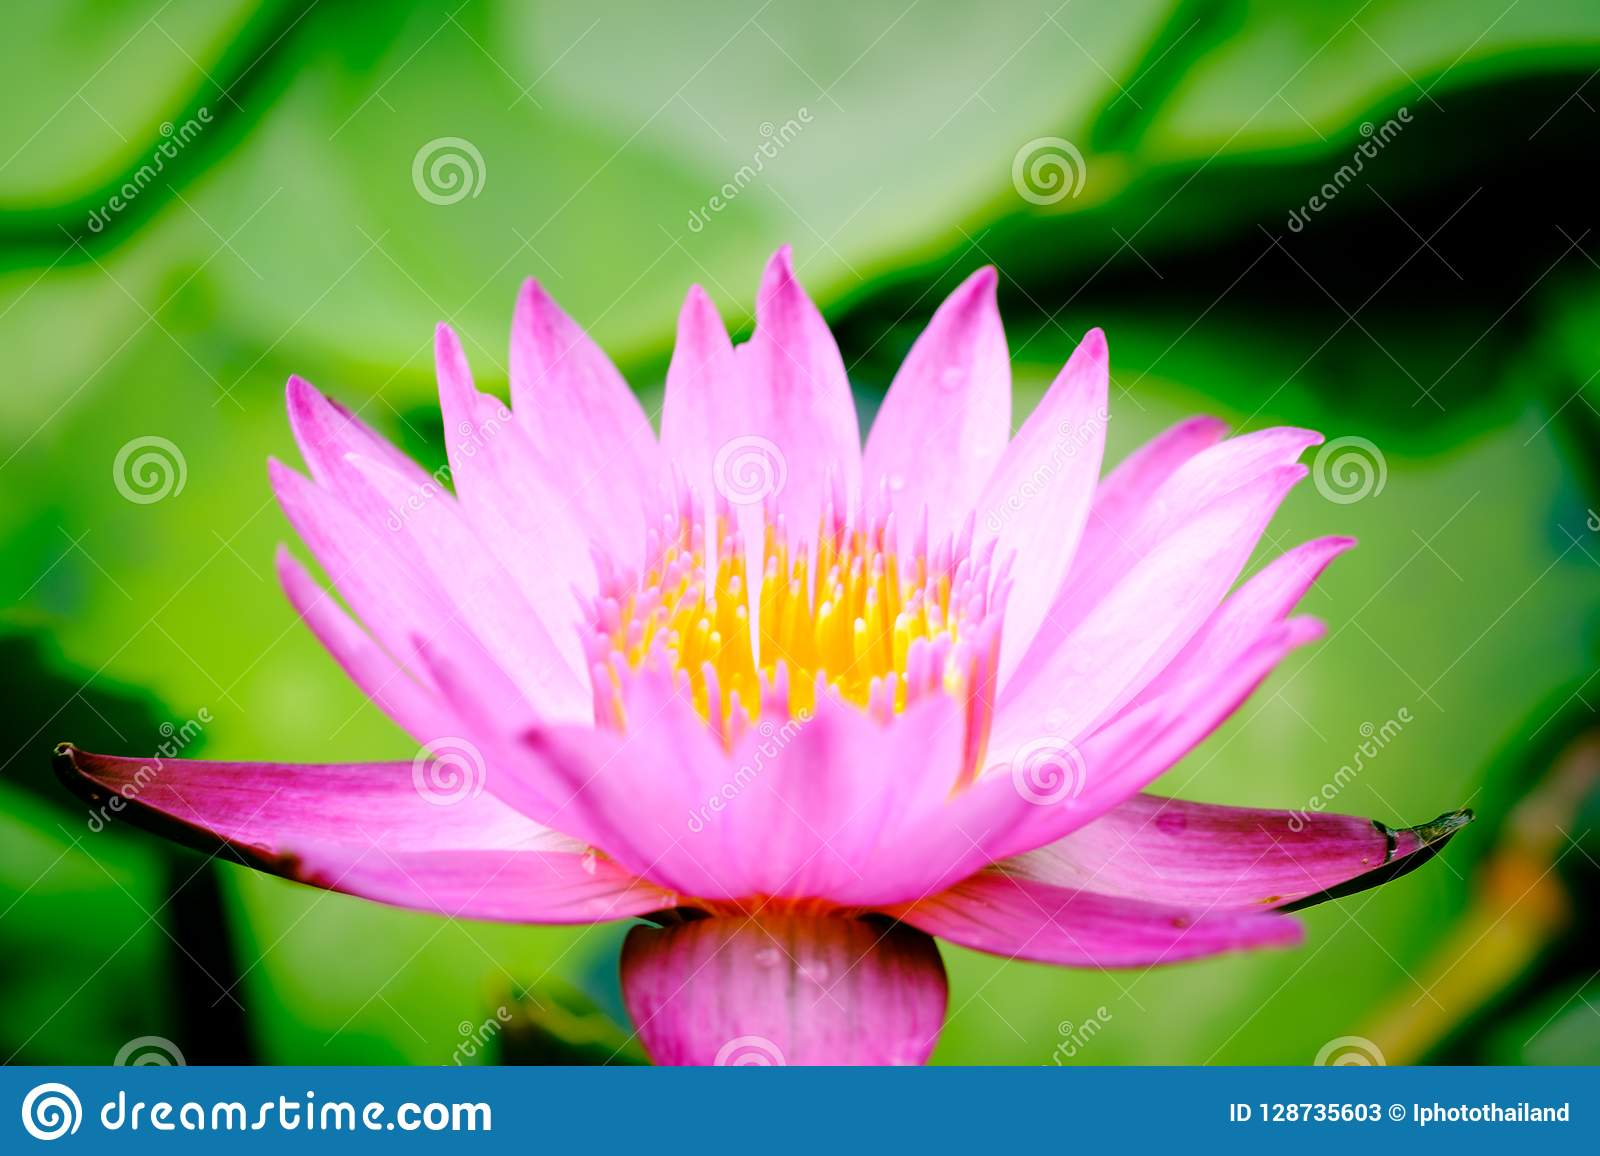 Clouse Up Image On Blooming Pink Lotus Flower Natural Background